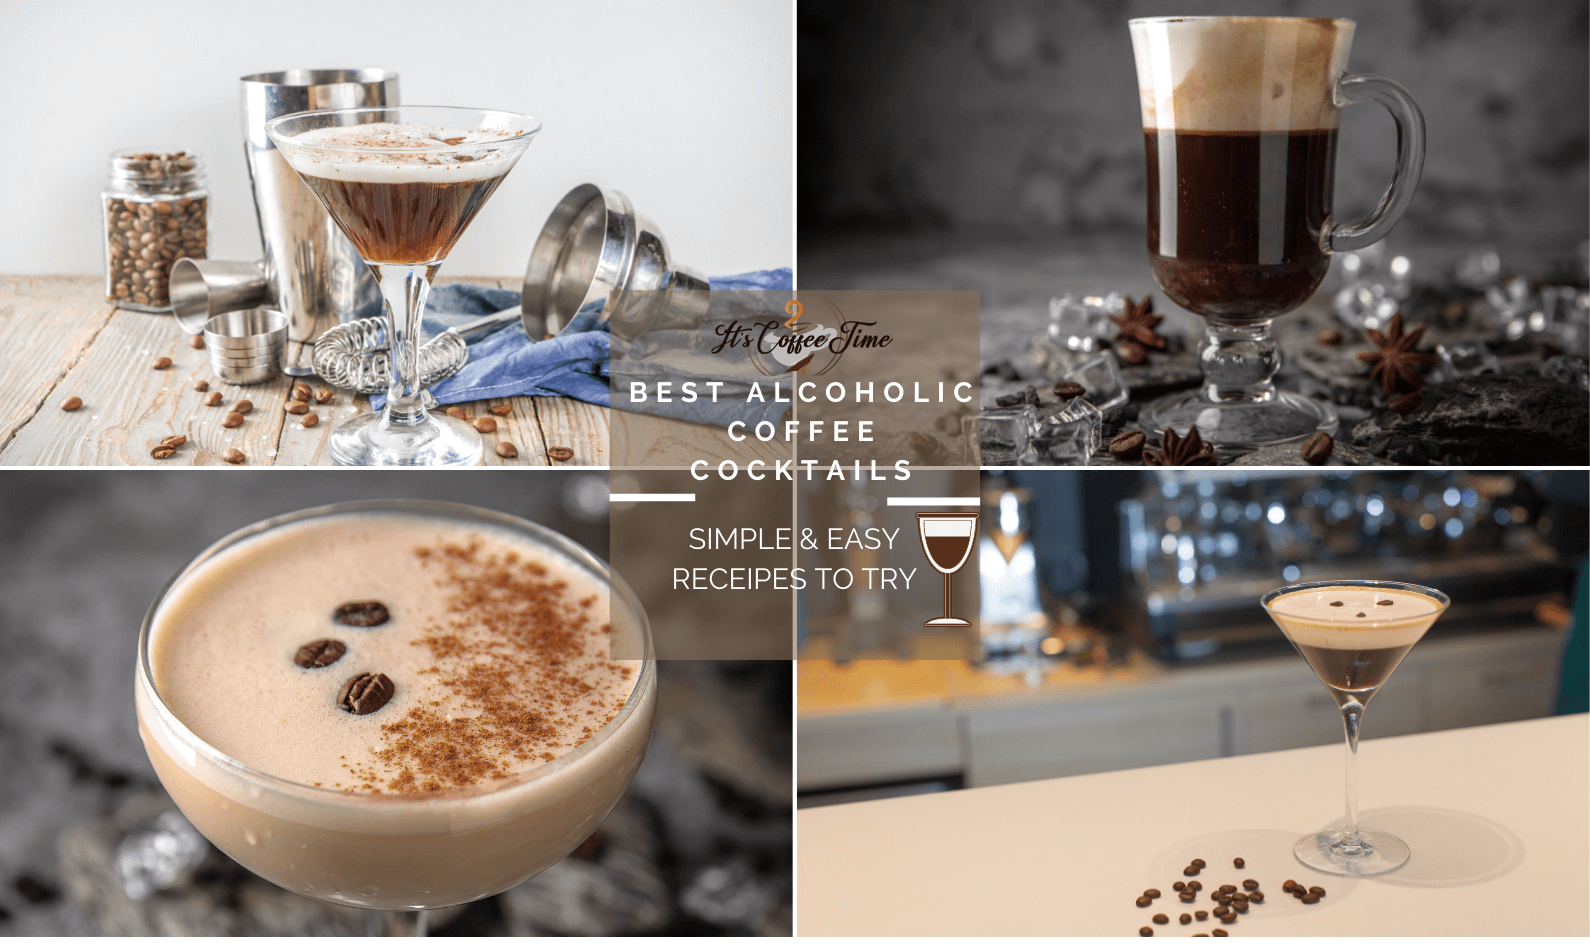 Best Alcoholic Coffee Cocktails